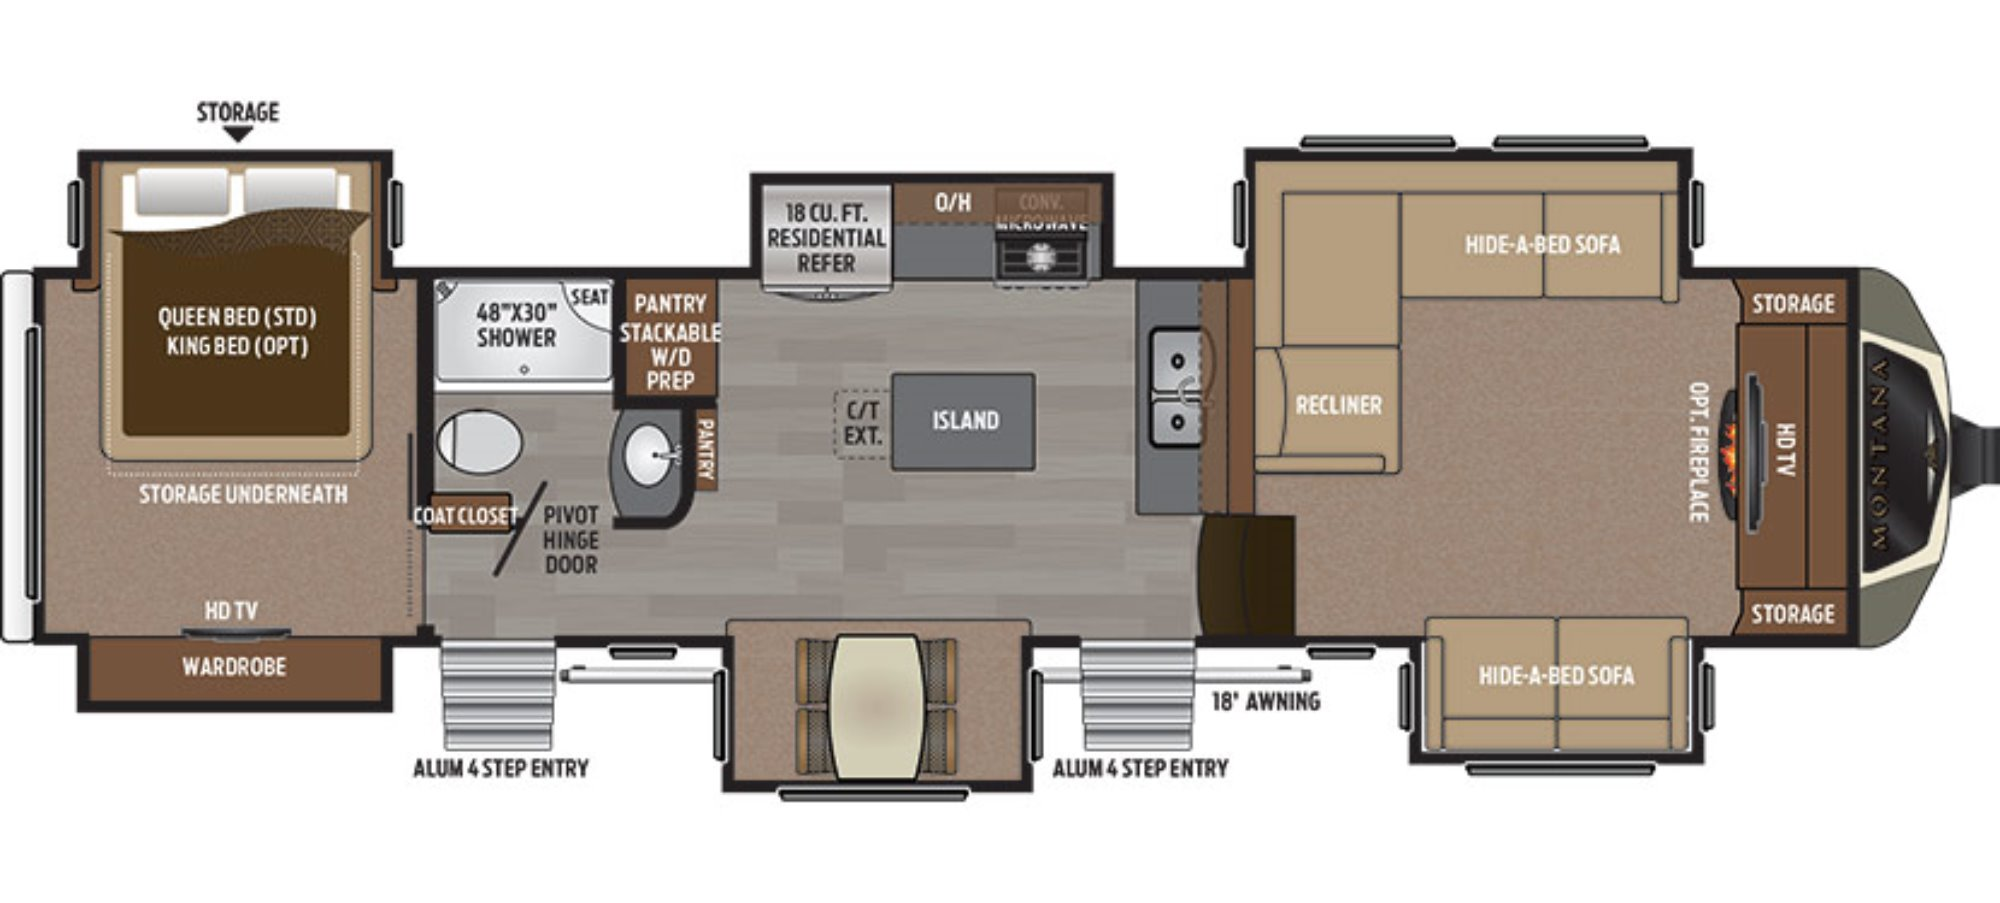 5th Wheel With Front Living Room For Sale. 2012 Open Range